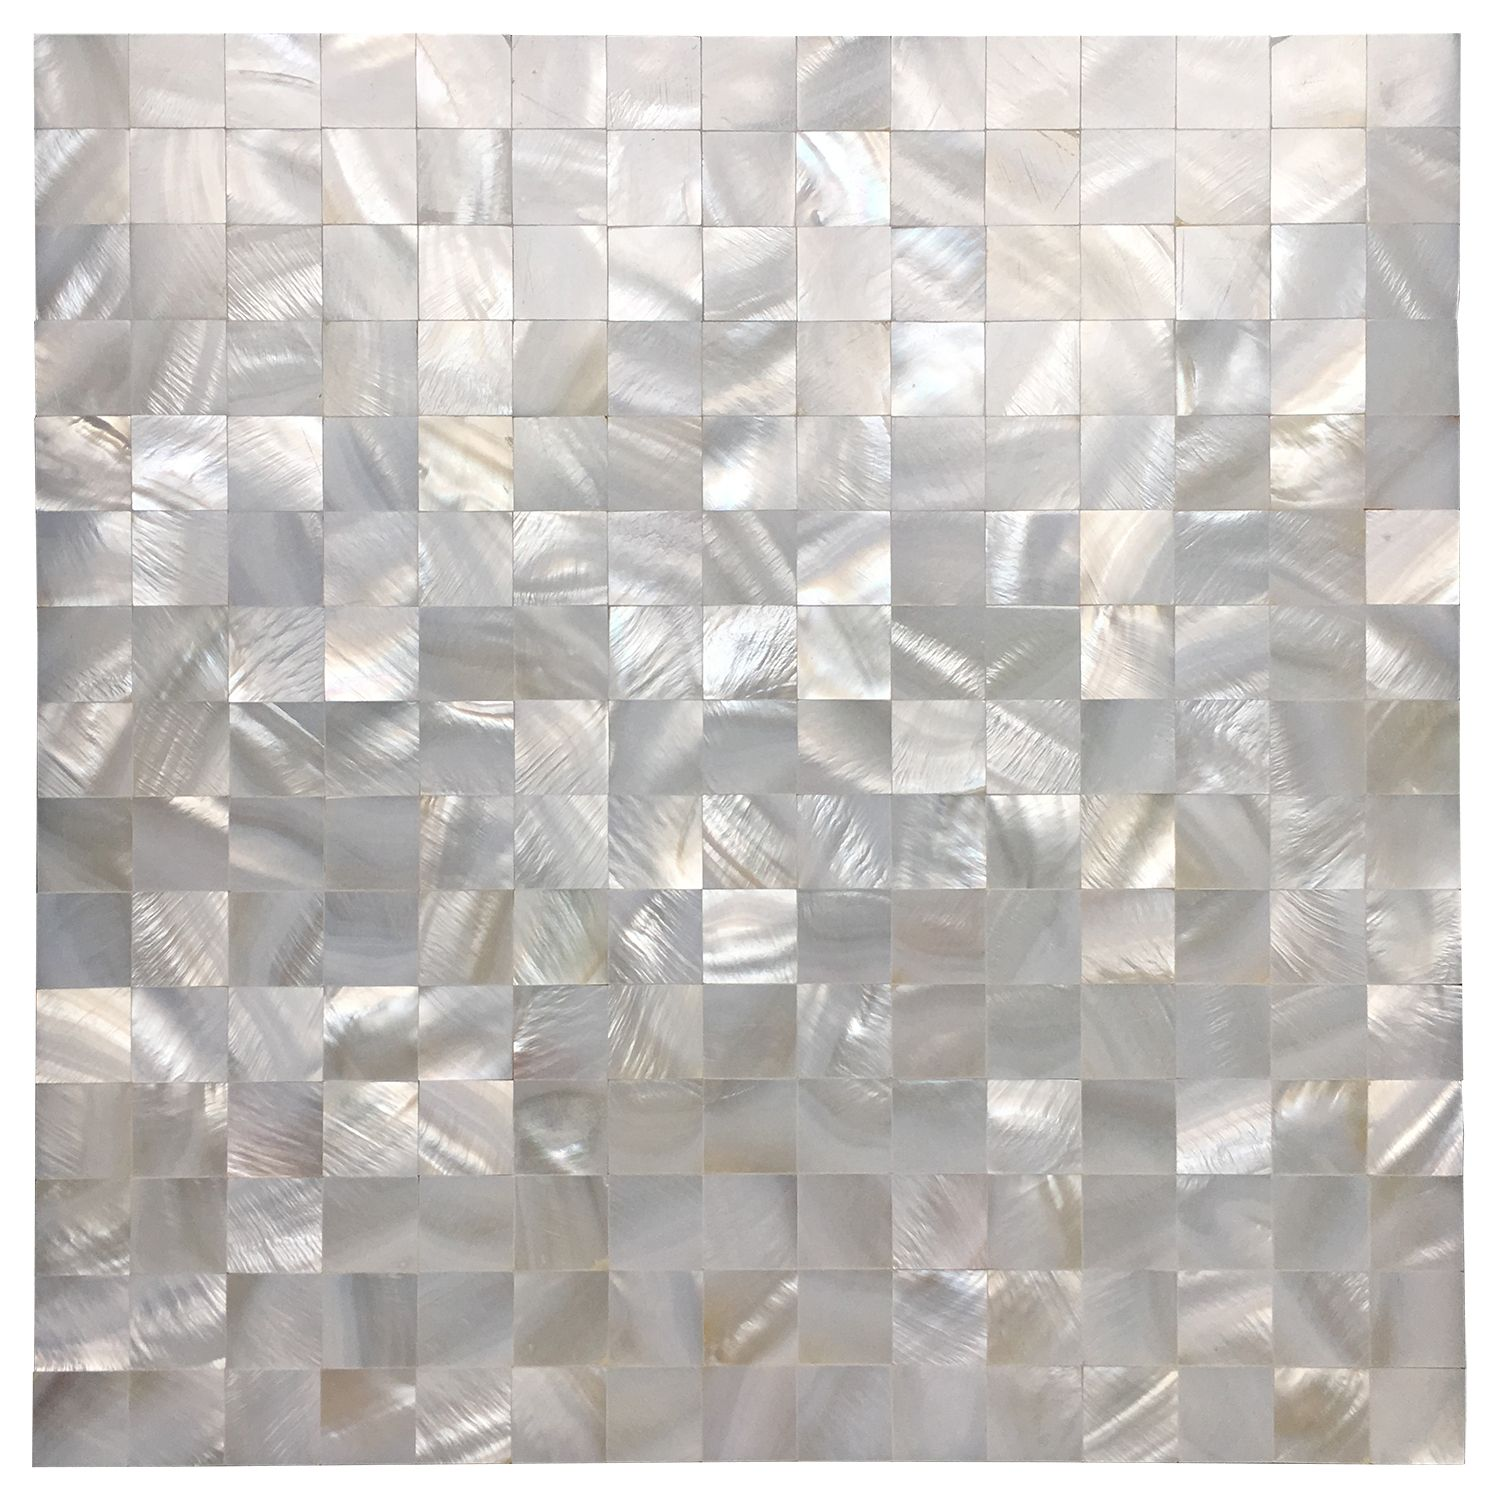 Art3d Square White With Seams 12 In X 12 In Mother Of Peral Tile 6 Pack Walmart Com In 2020 Shell Mosaic Tile Pearl Tile Mosaic Tile Backsplash